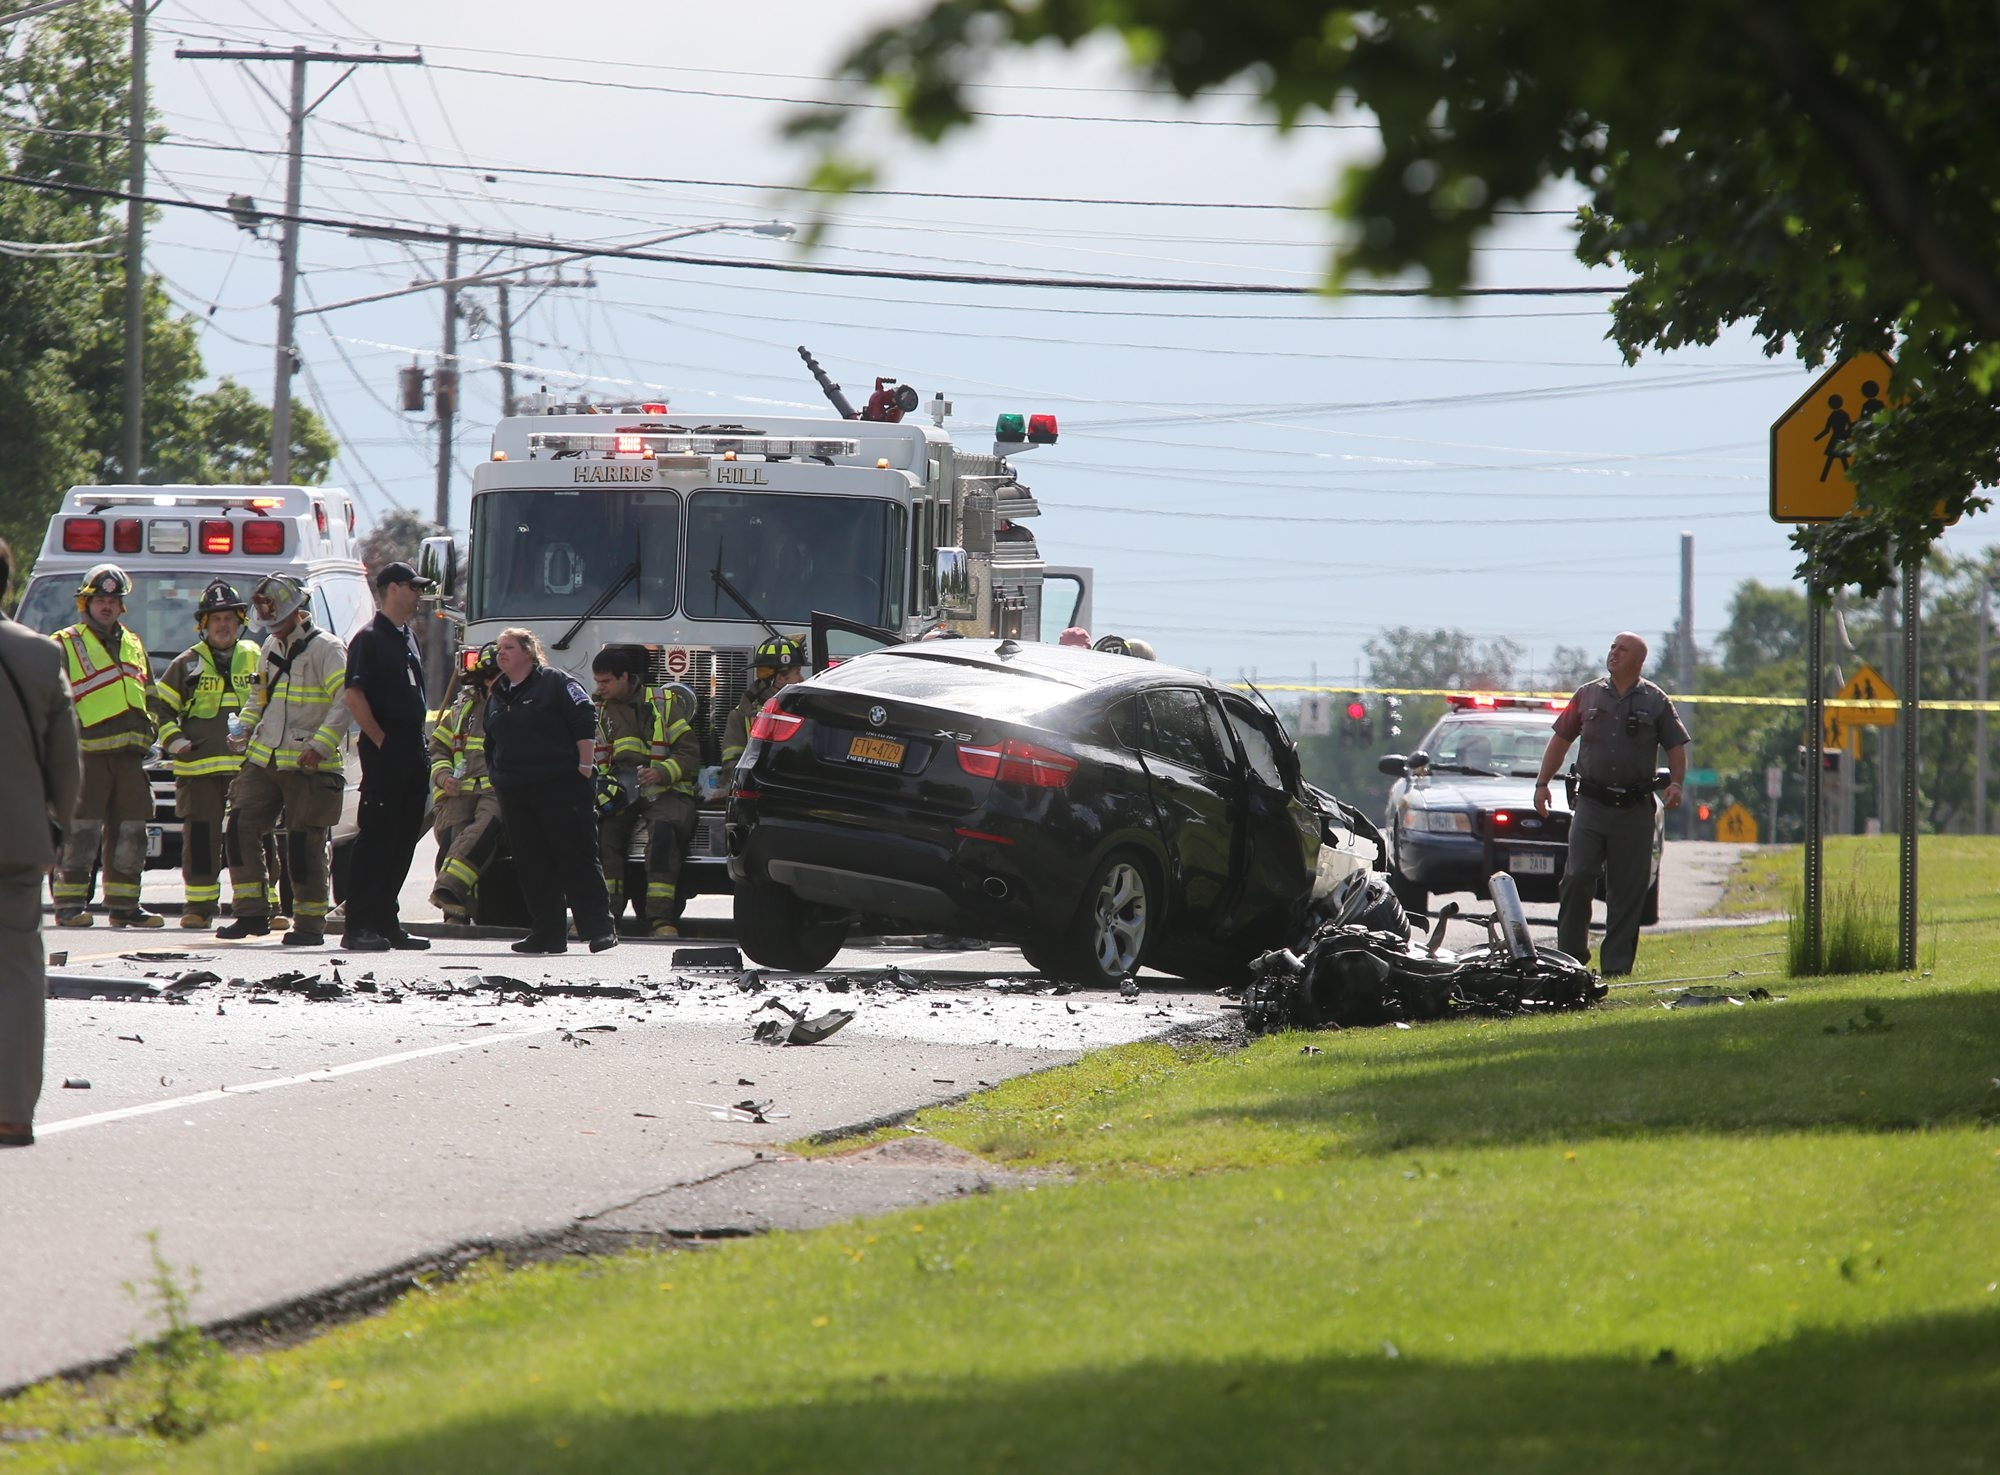 Police and fire personnel work at the scene of a collision Wednesday between a motorcycle and a BMW on Main Street in Clarence. The motorcyclist, 18-year-old Patrick S. Conway, was thrown from his bike and killed instantly, police said.